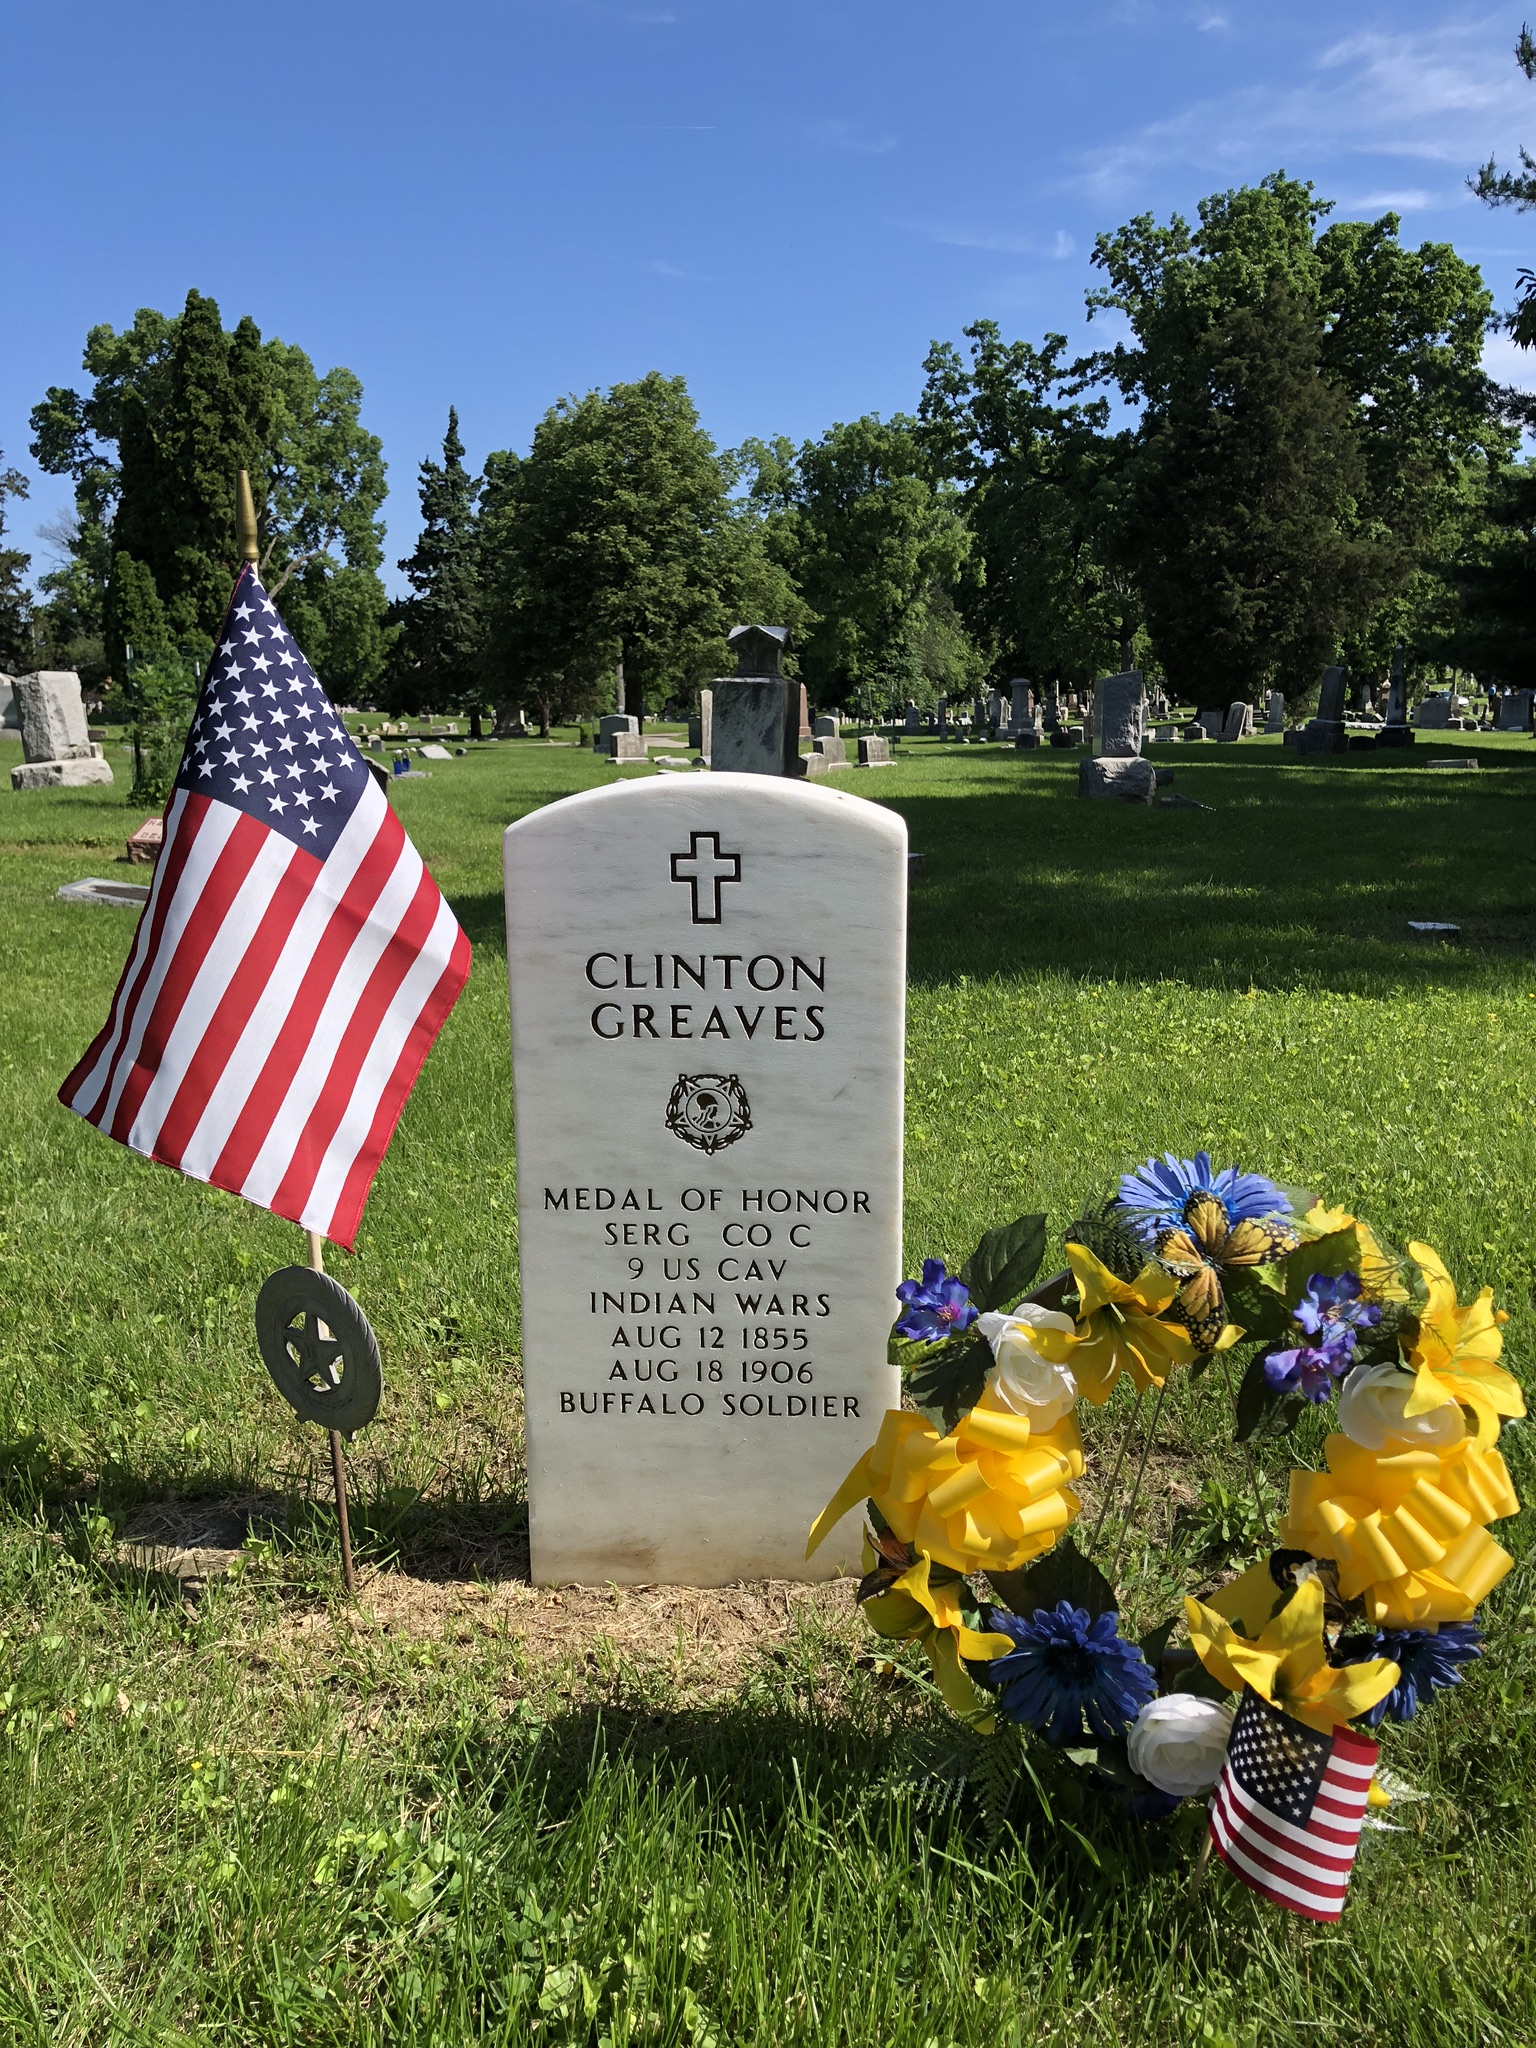 Clinton Greaves Memorial